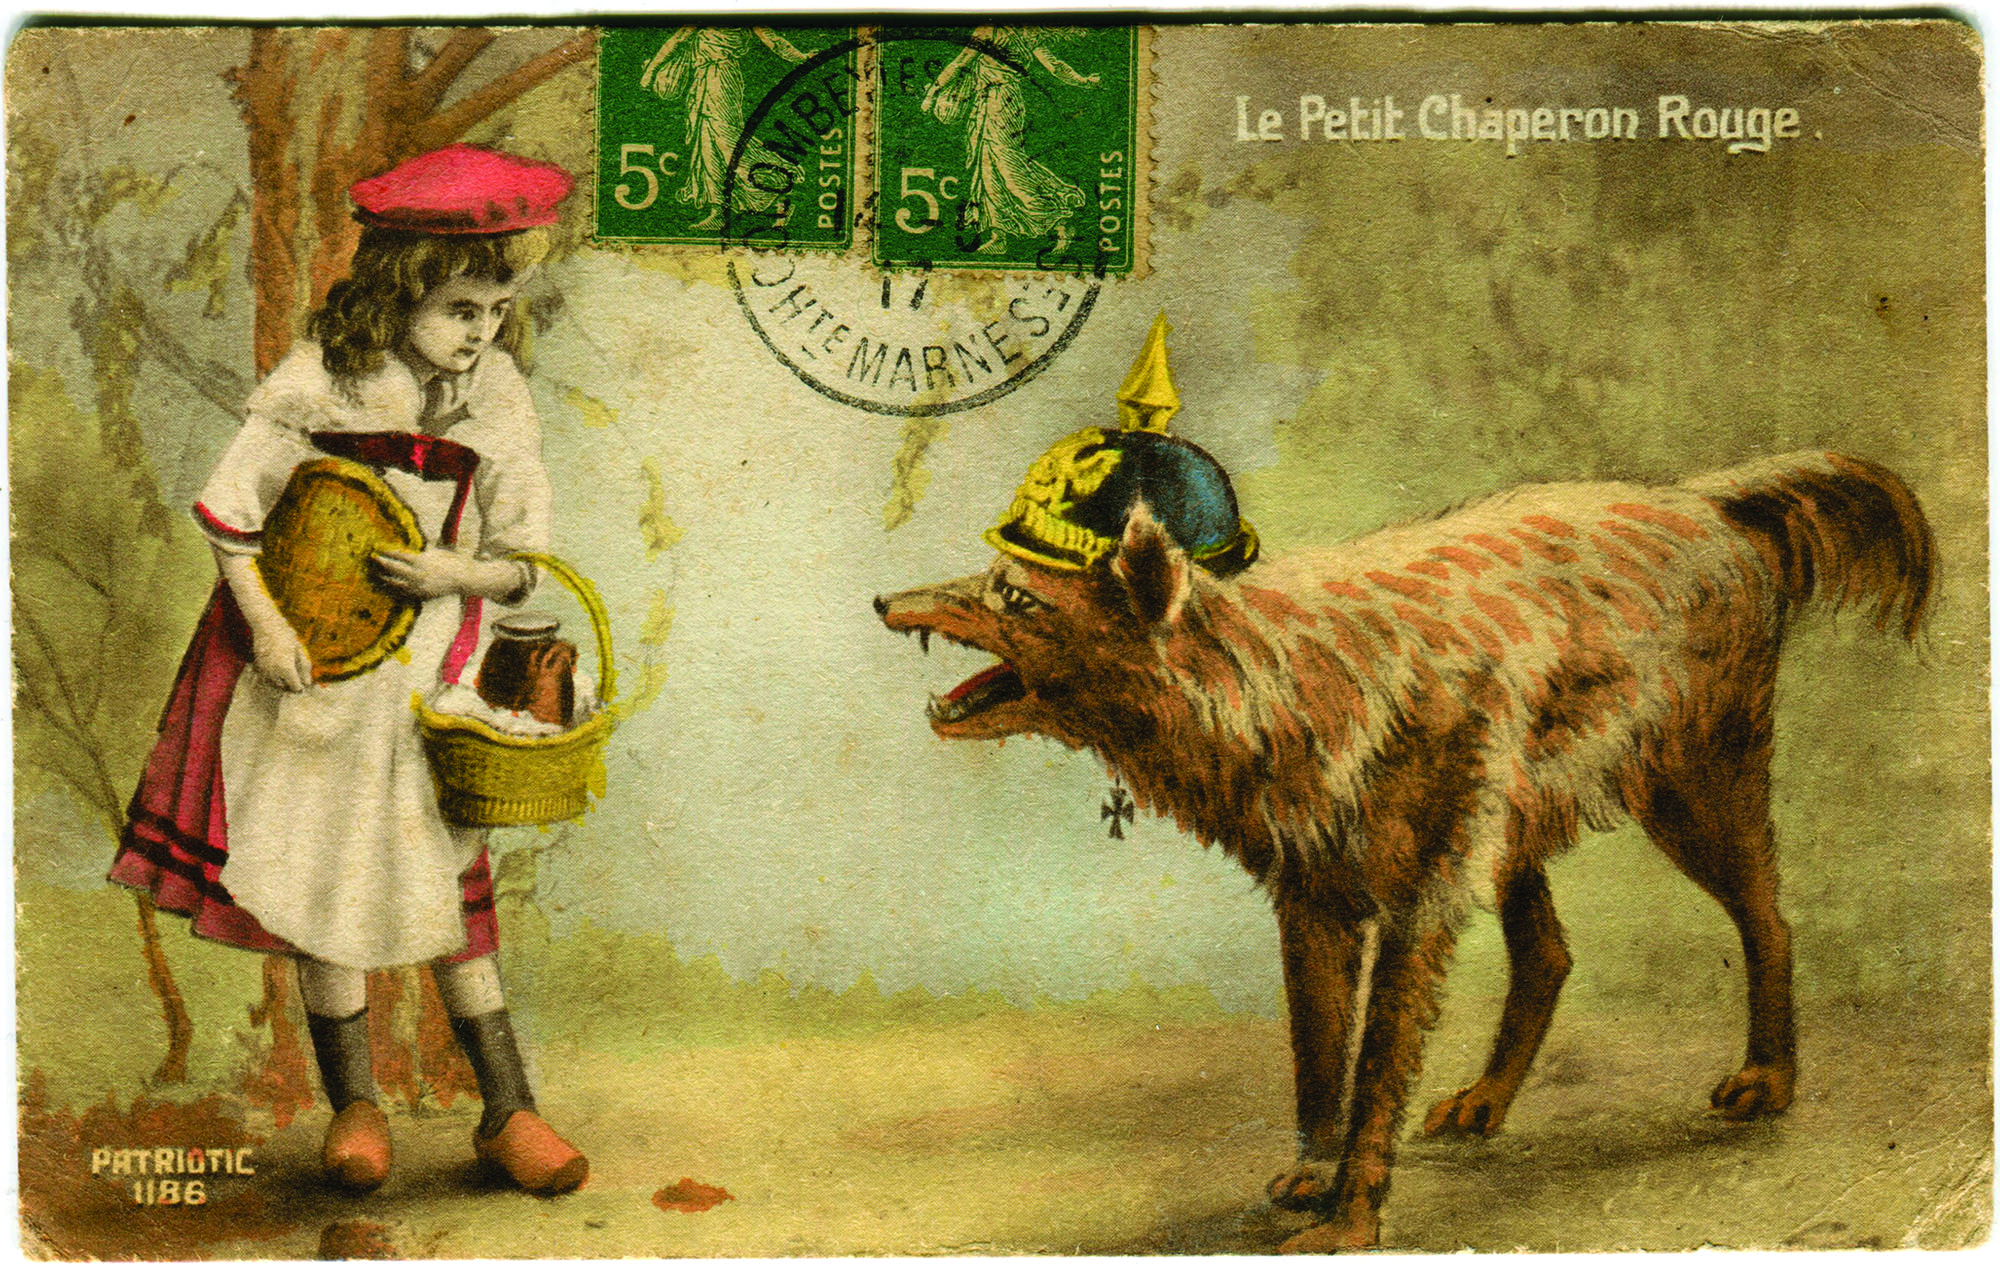 Post card depicting Little Red Riding Hood from 1919.